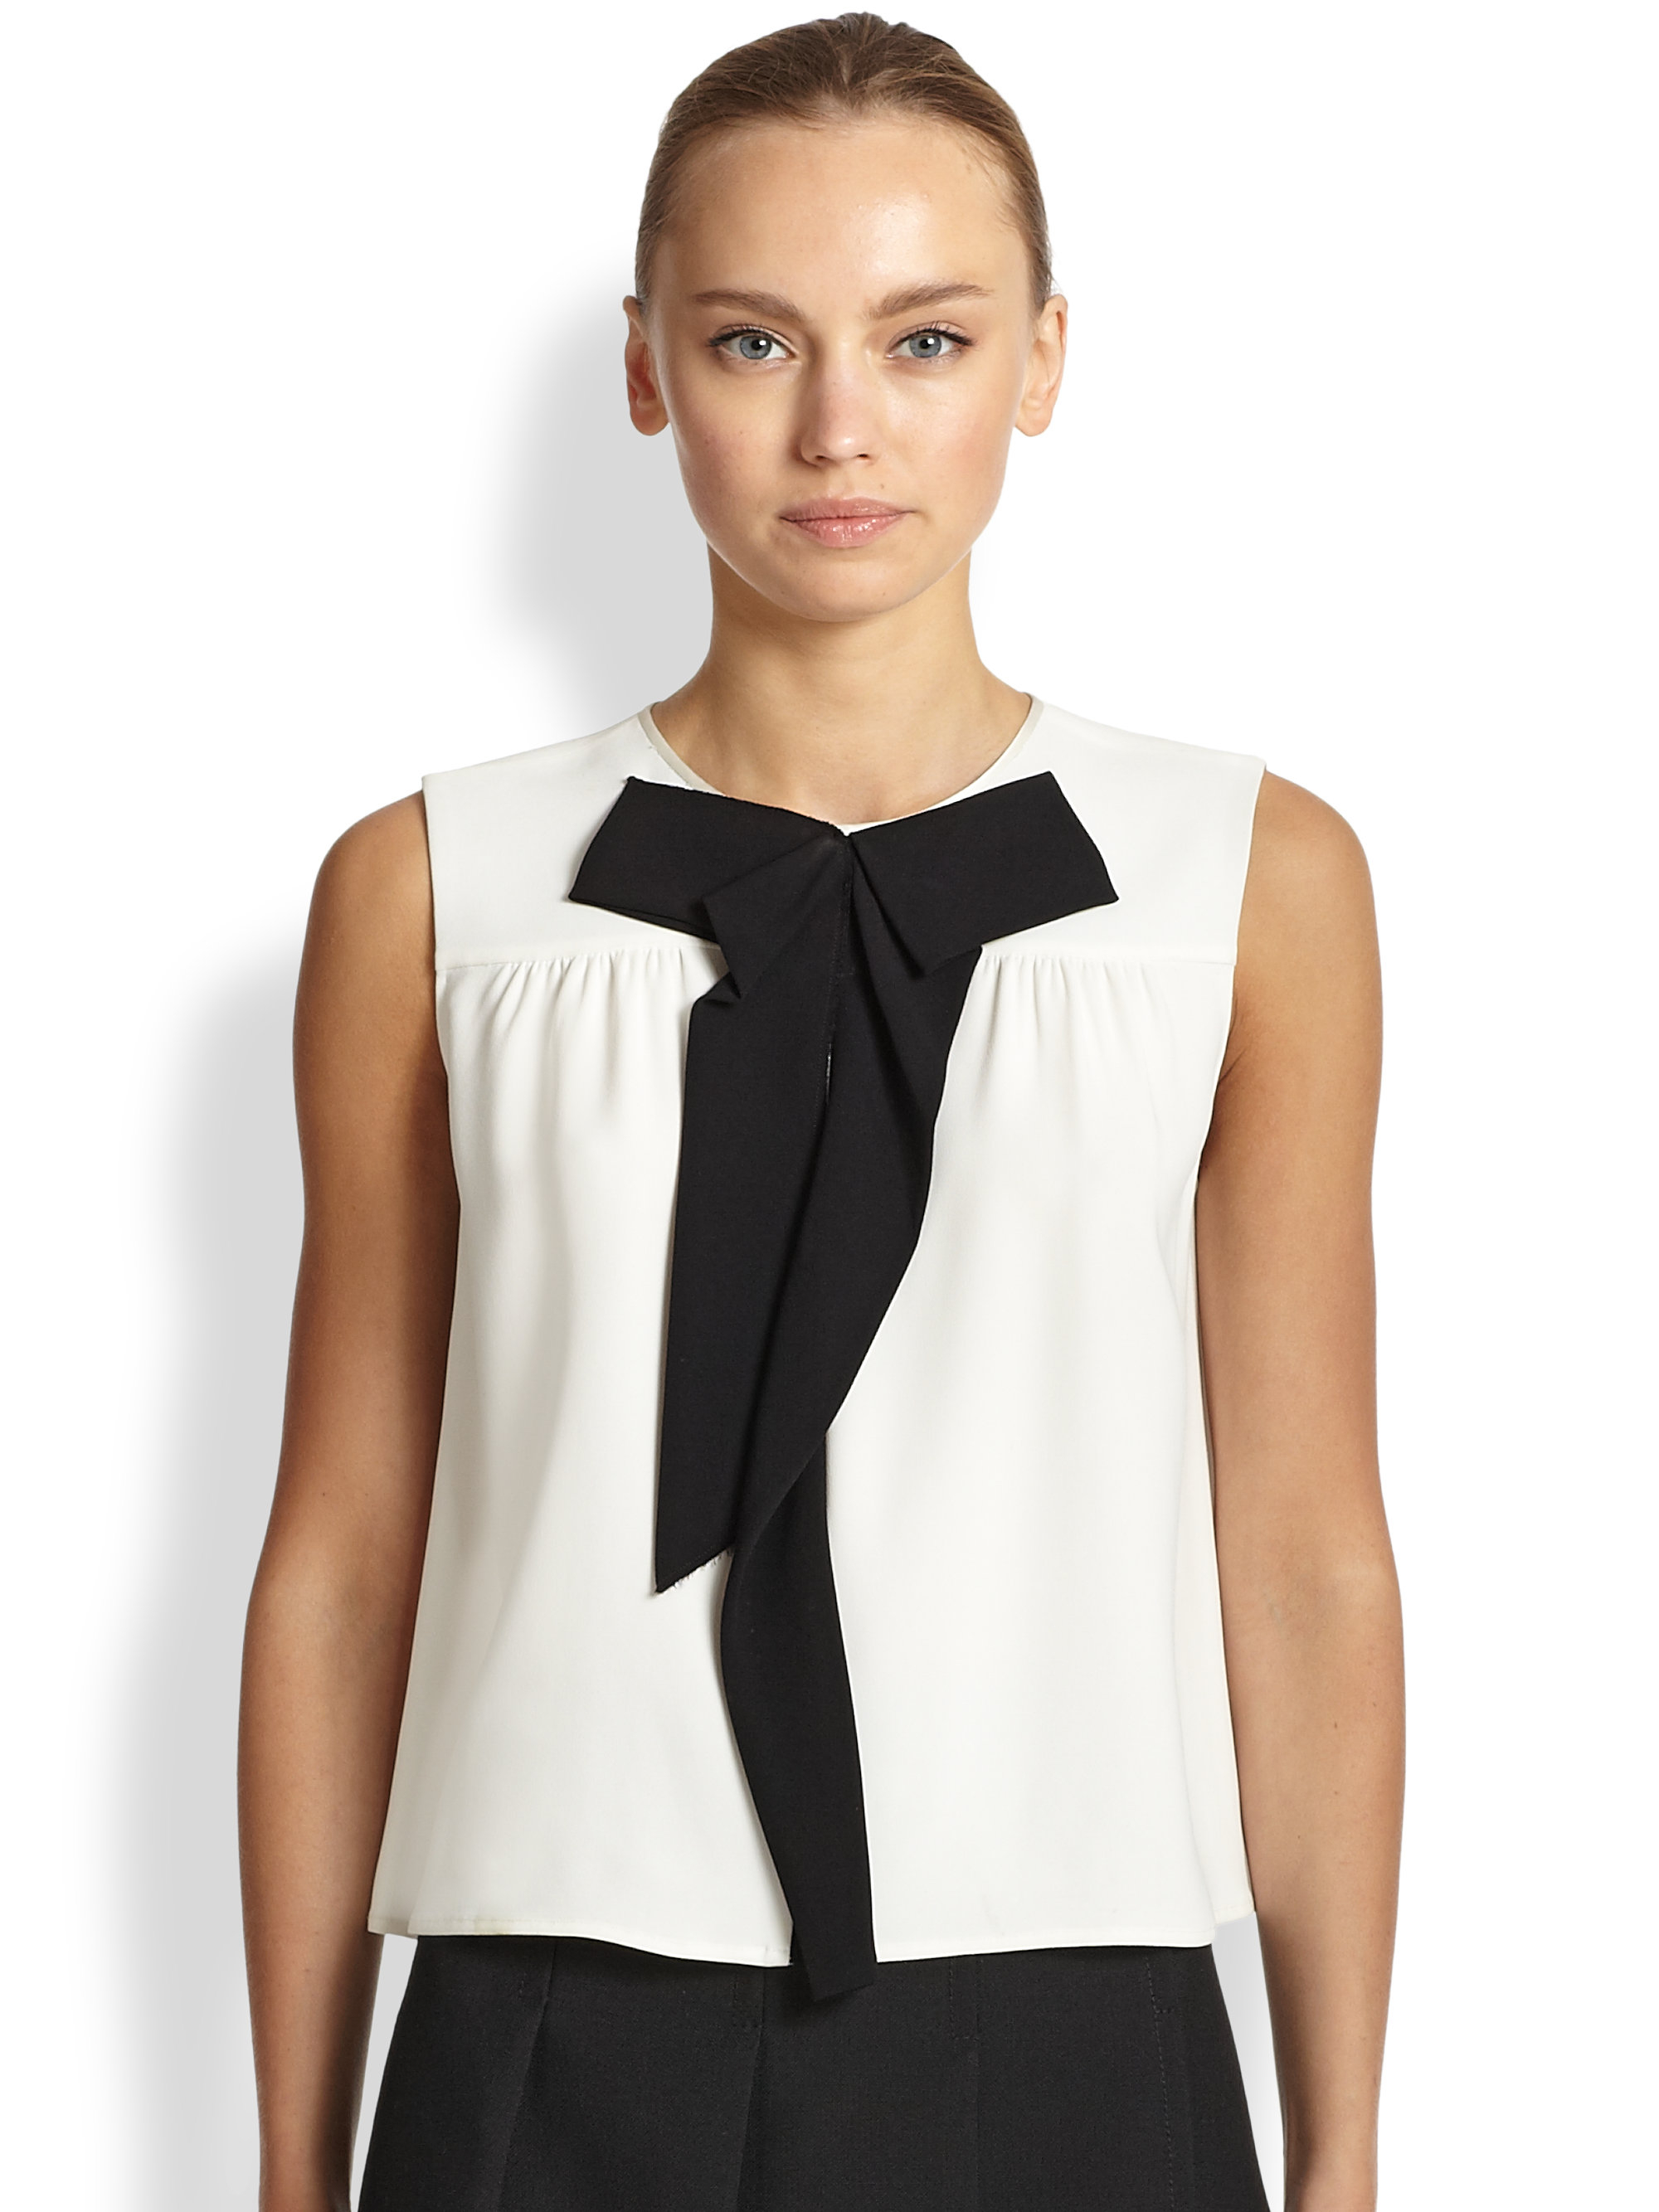 Peter Pan Collar Sleeveless Blouse